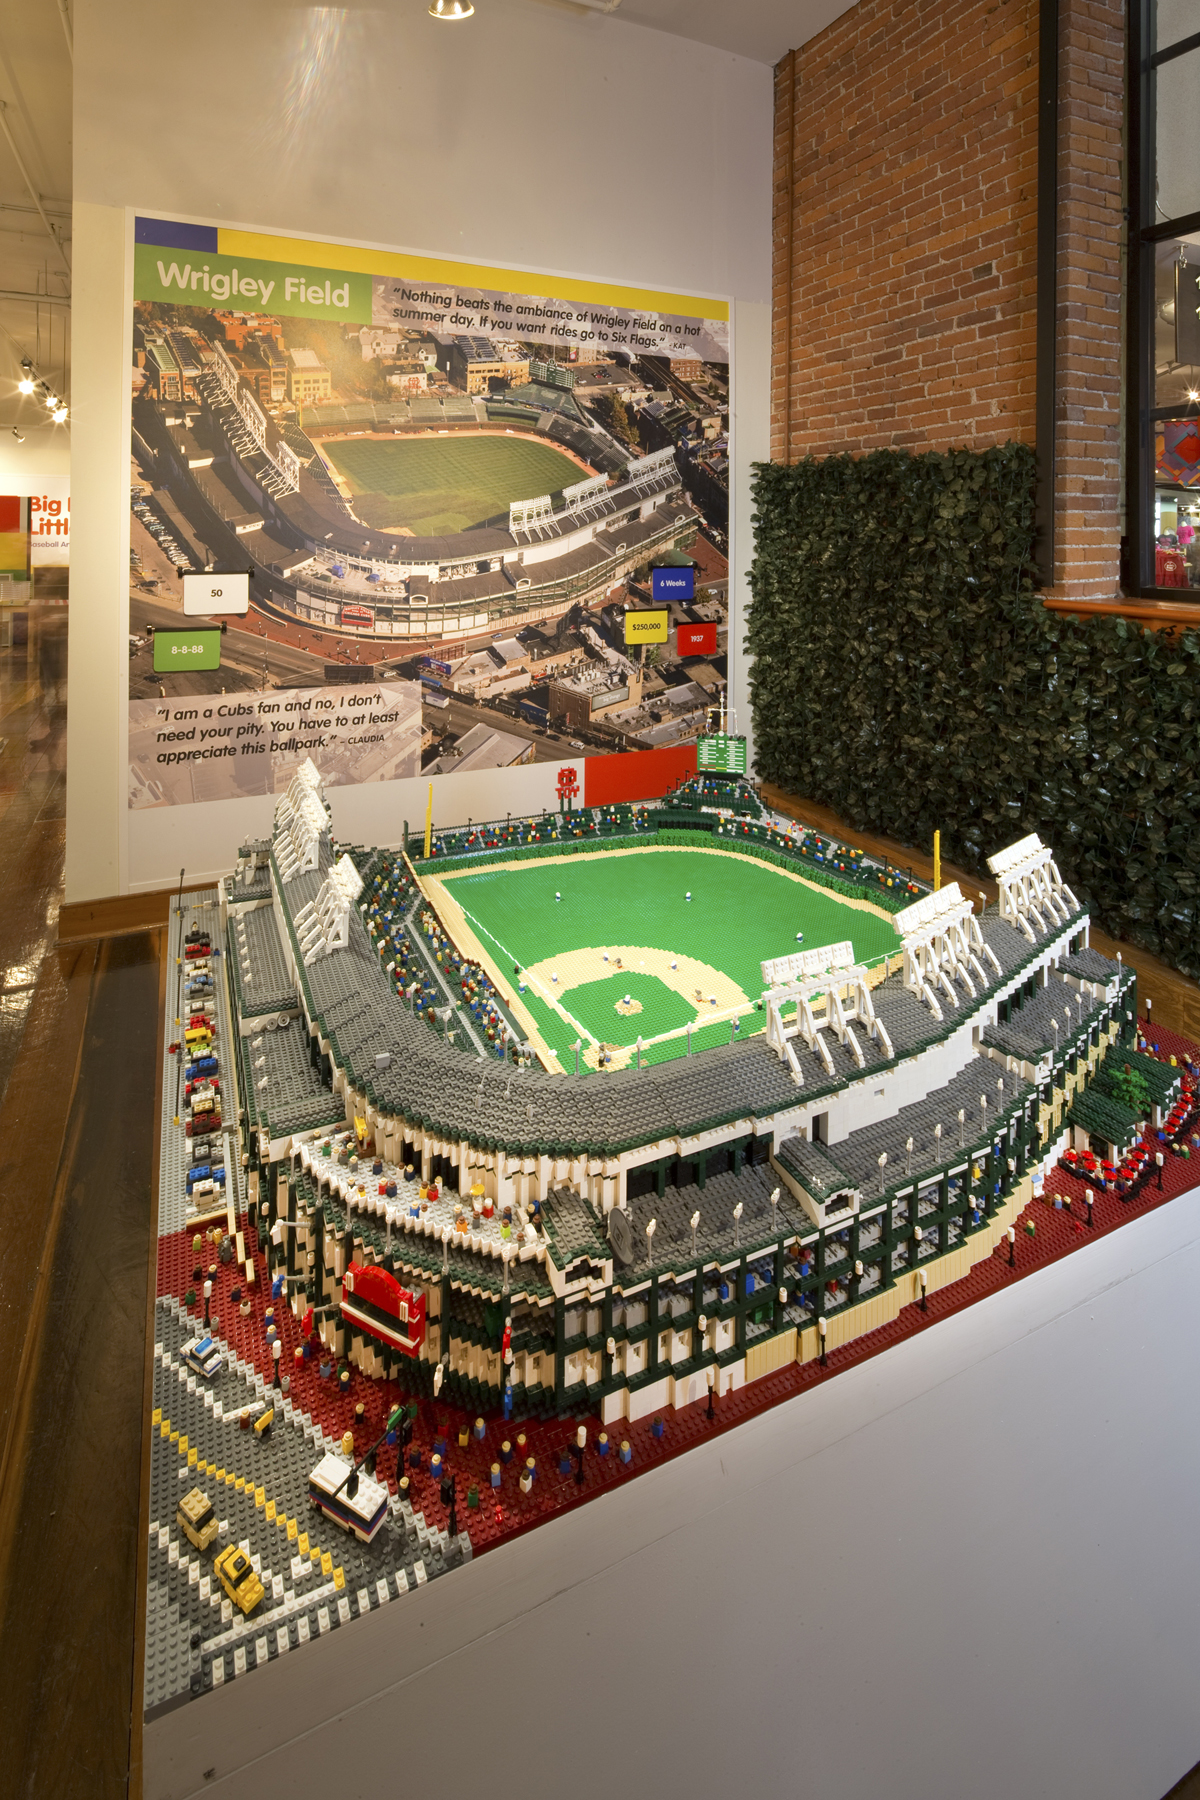 Double Play Delight  LEGO     Bricks and Baseball   Louisville Slugger     This jaw dropping 5 foot wide recreation of Wrigley took artist Sean Kenney  27 days and 58 000 LEGO bricks to complete  When you see in person at the  museum